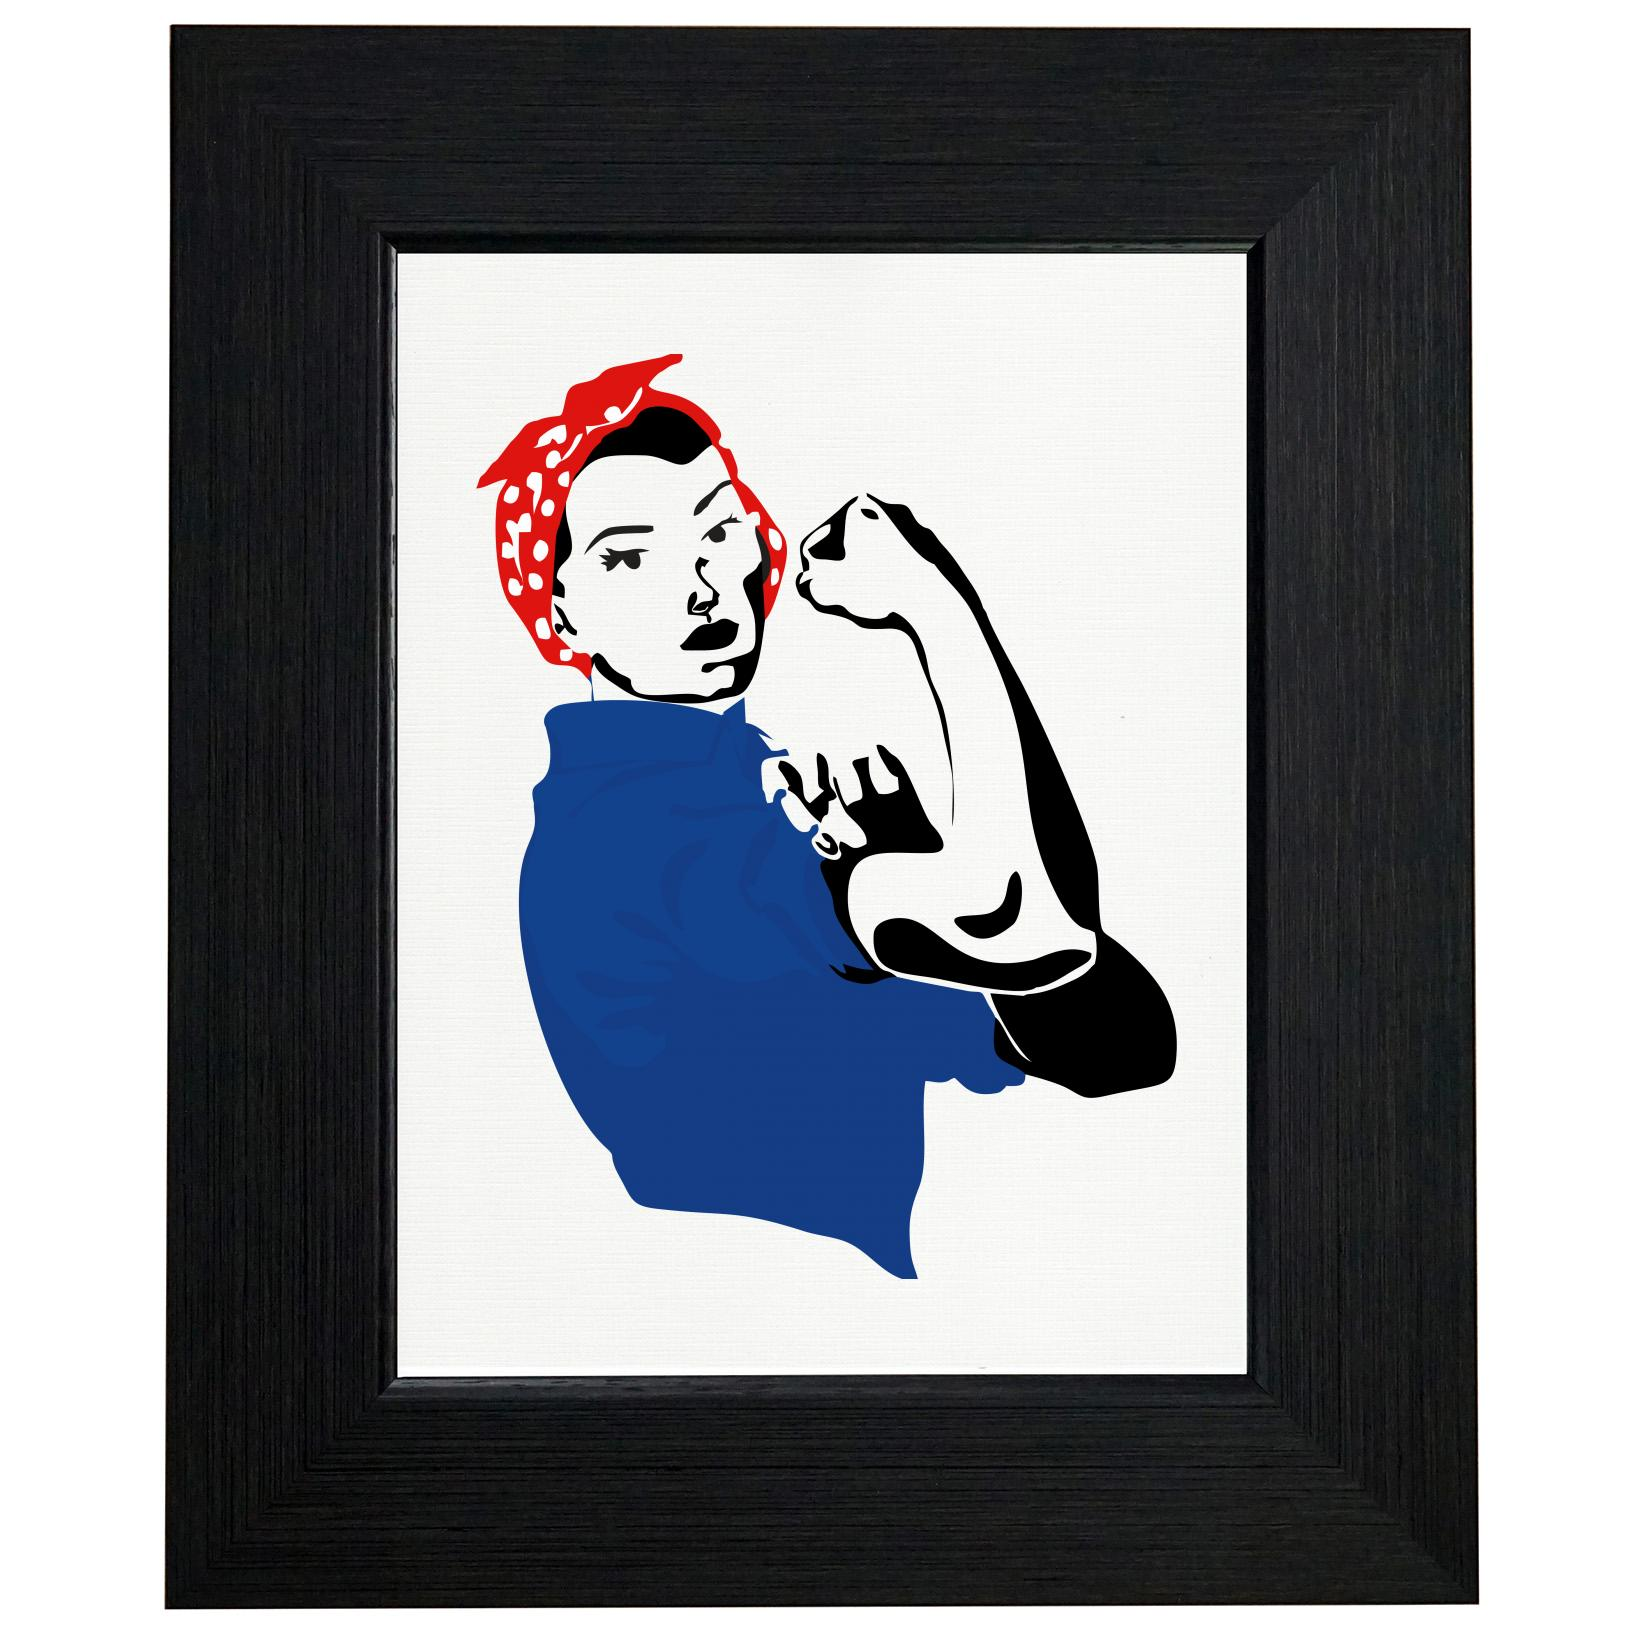 Rosie The Riveter - Girl Power - Throwback Graphic Framed Print Poster Wall or Desk Mount Options